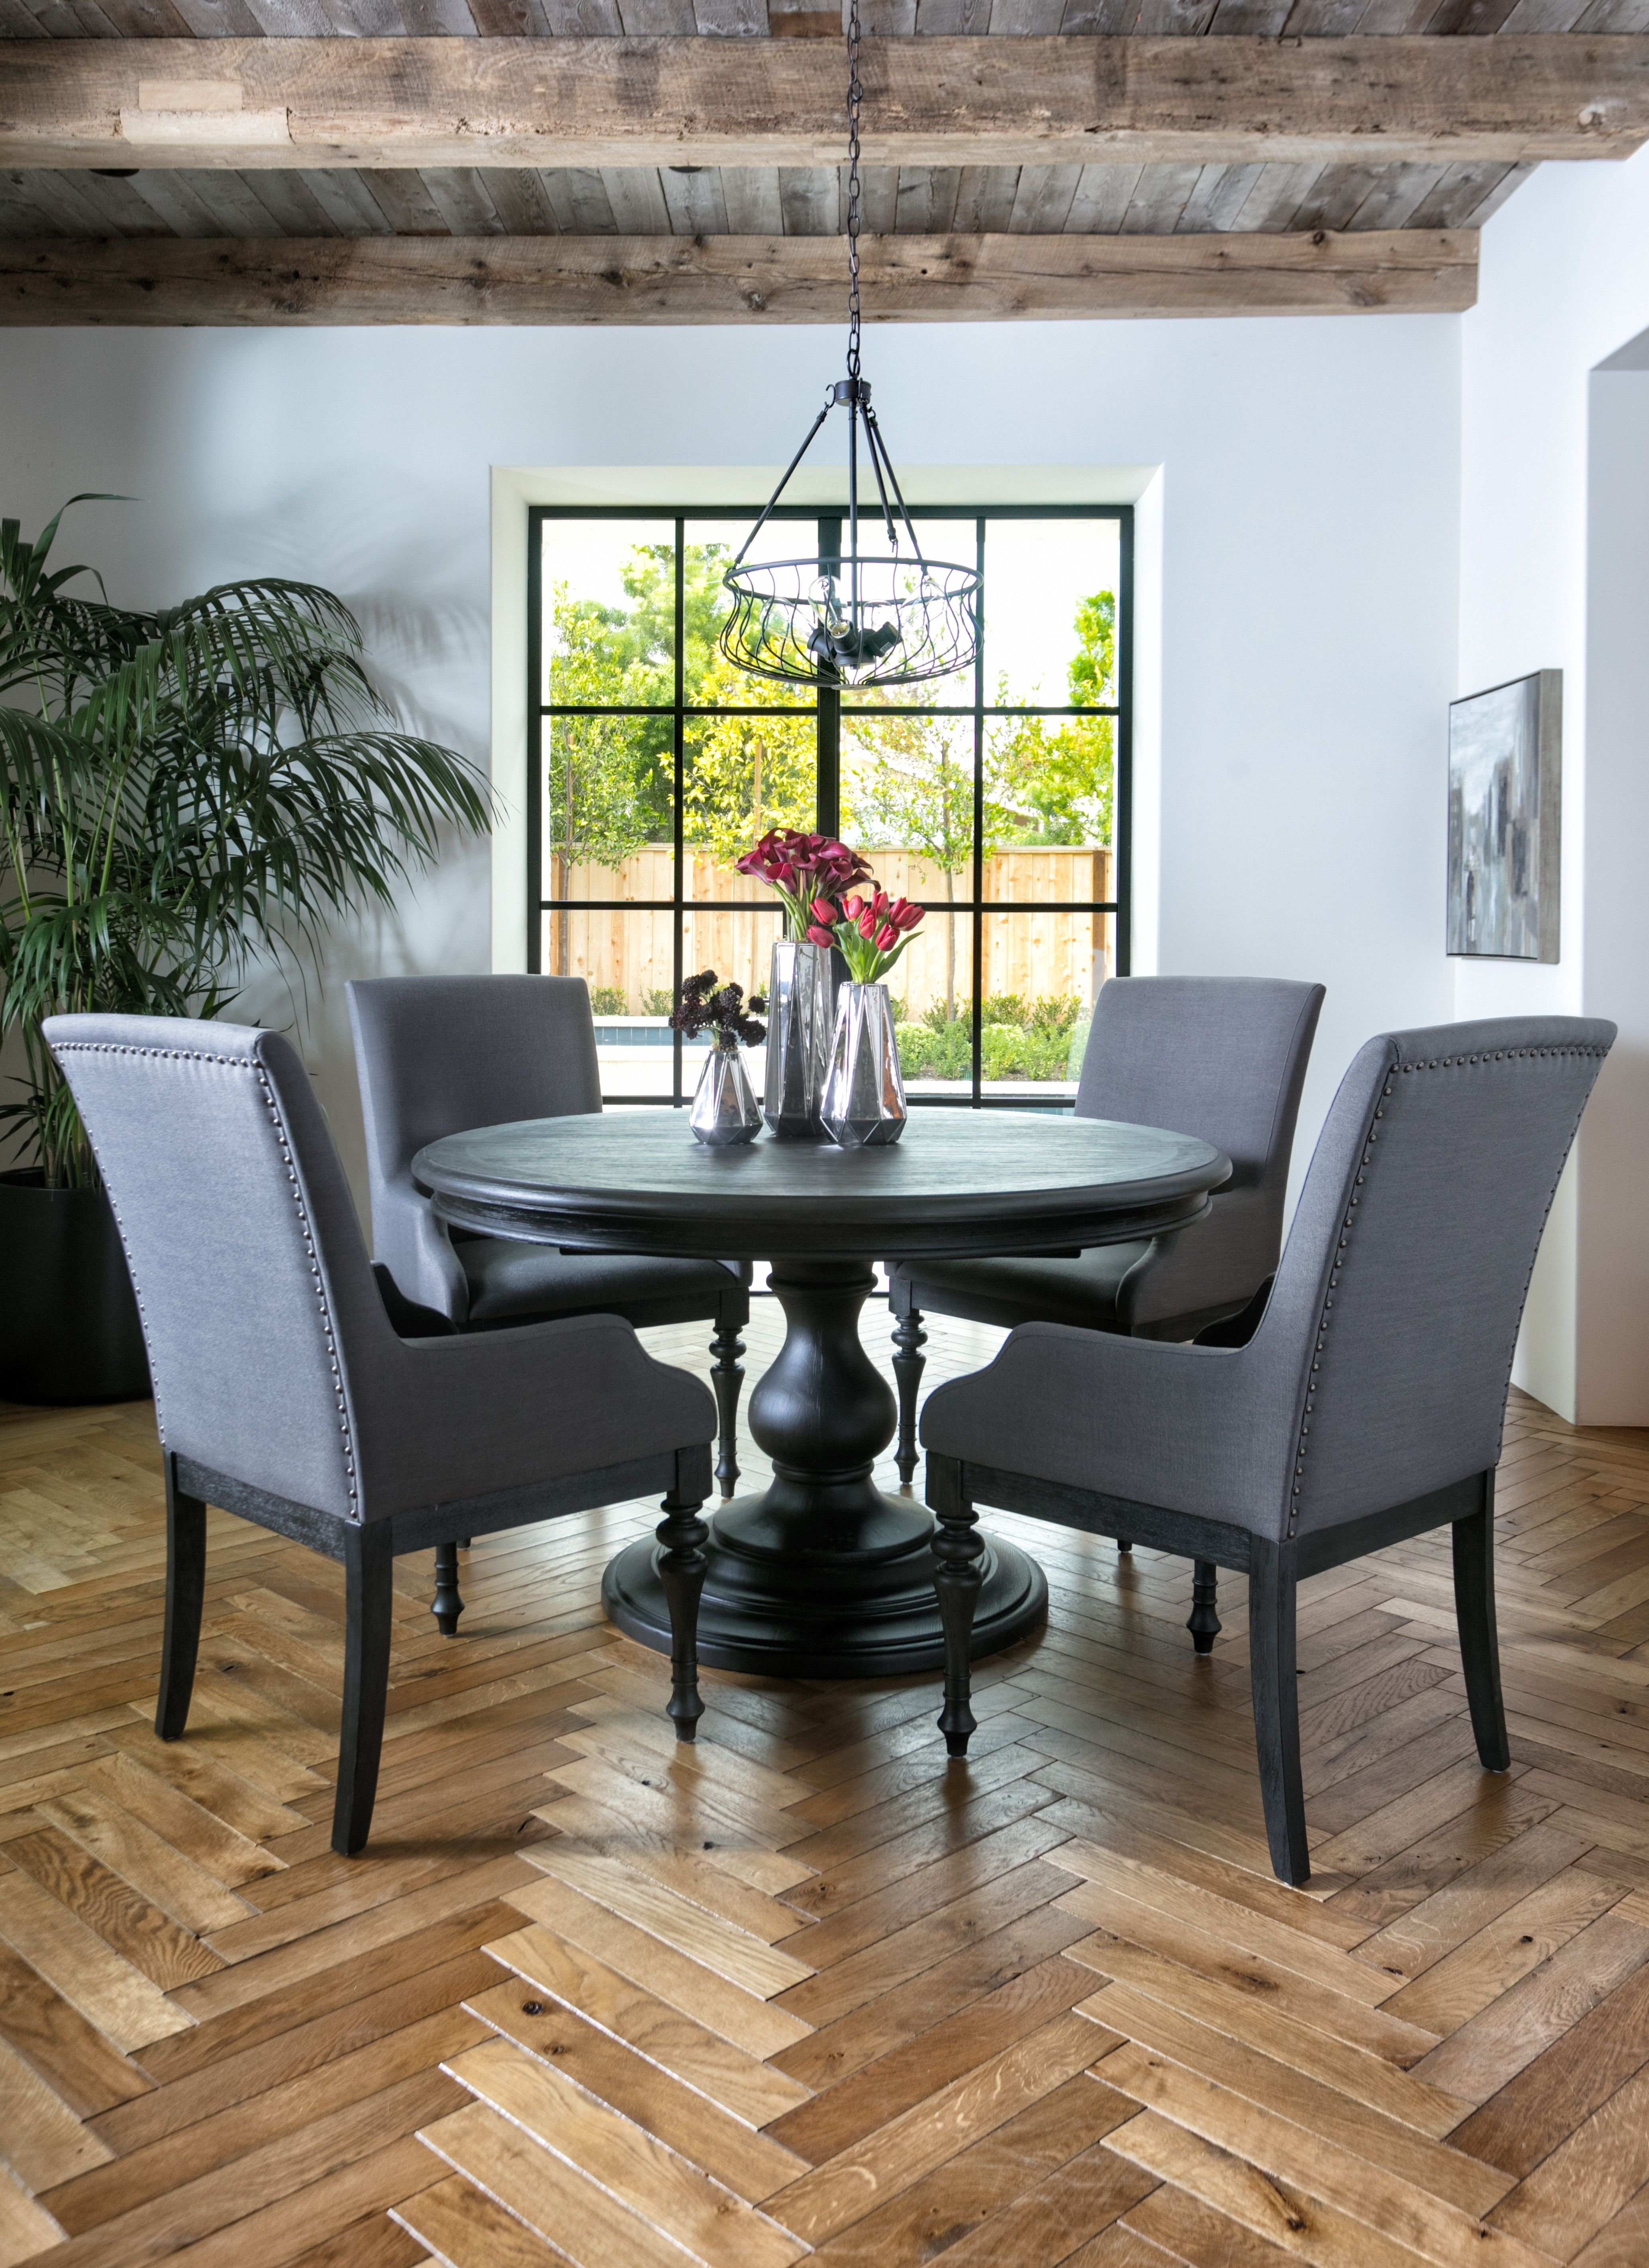 Caira Black 5 Piece Round Dining Set With Diamond Back Side Chairs Pertaining To Most Up To Date Caira 7 Piece Rectangular Dining Sets With Diamond Back Side Chairs (View 3 of 20)